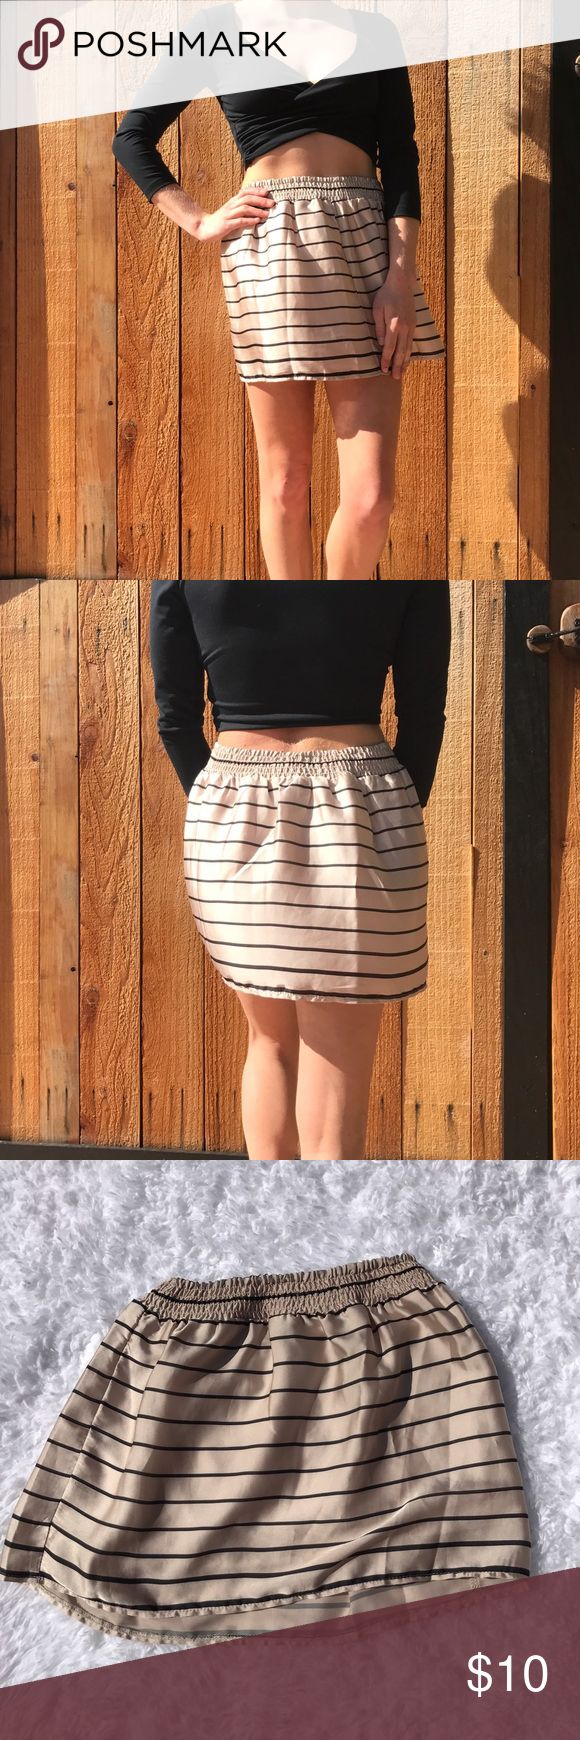 Mini skirt Measurements upon request. Stretchy material Skirts Mini